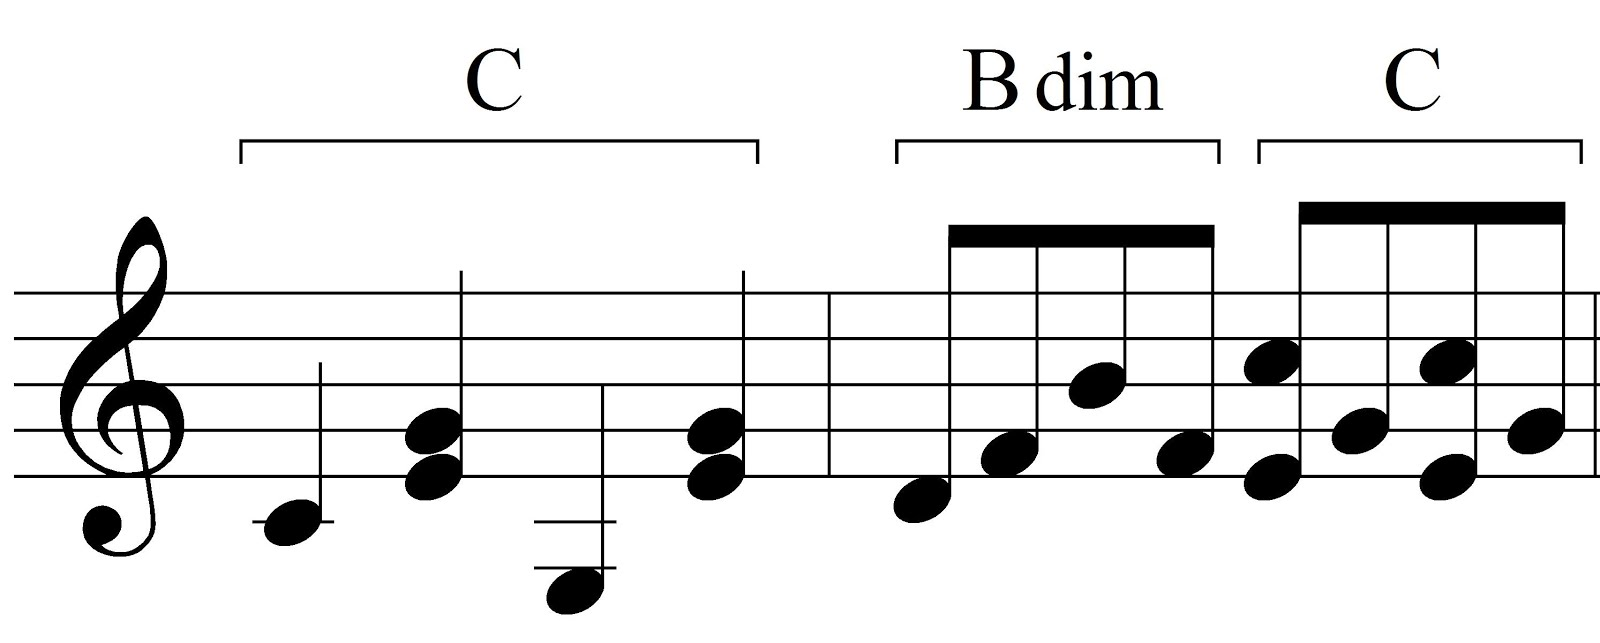 defining music from music theory Music-theory definition: noun (uncountable) 1 the field of study dealing with  how music works, typically examining the language and notation of music, the.